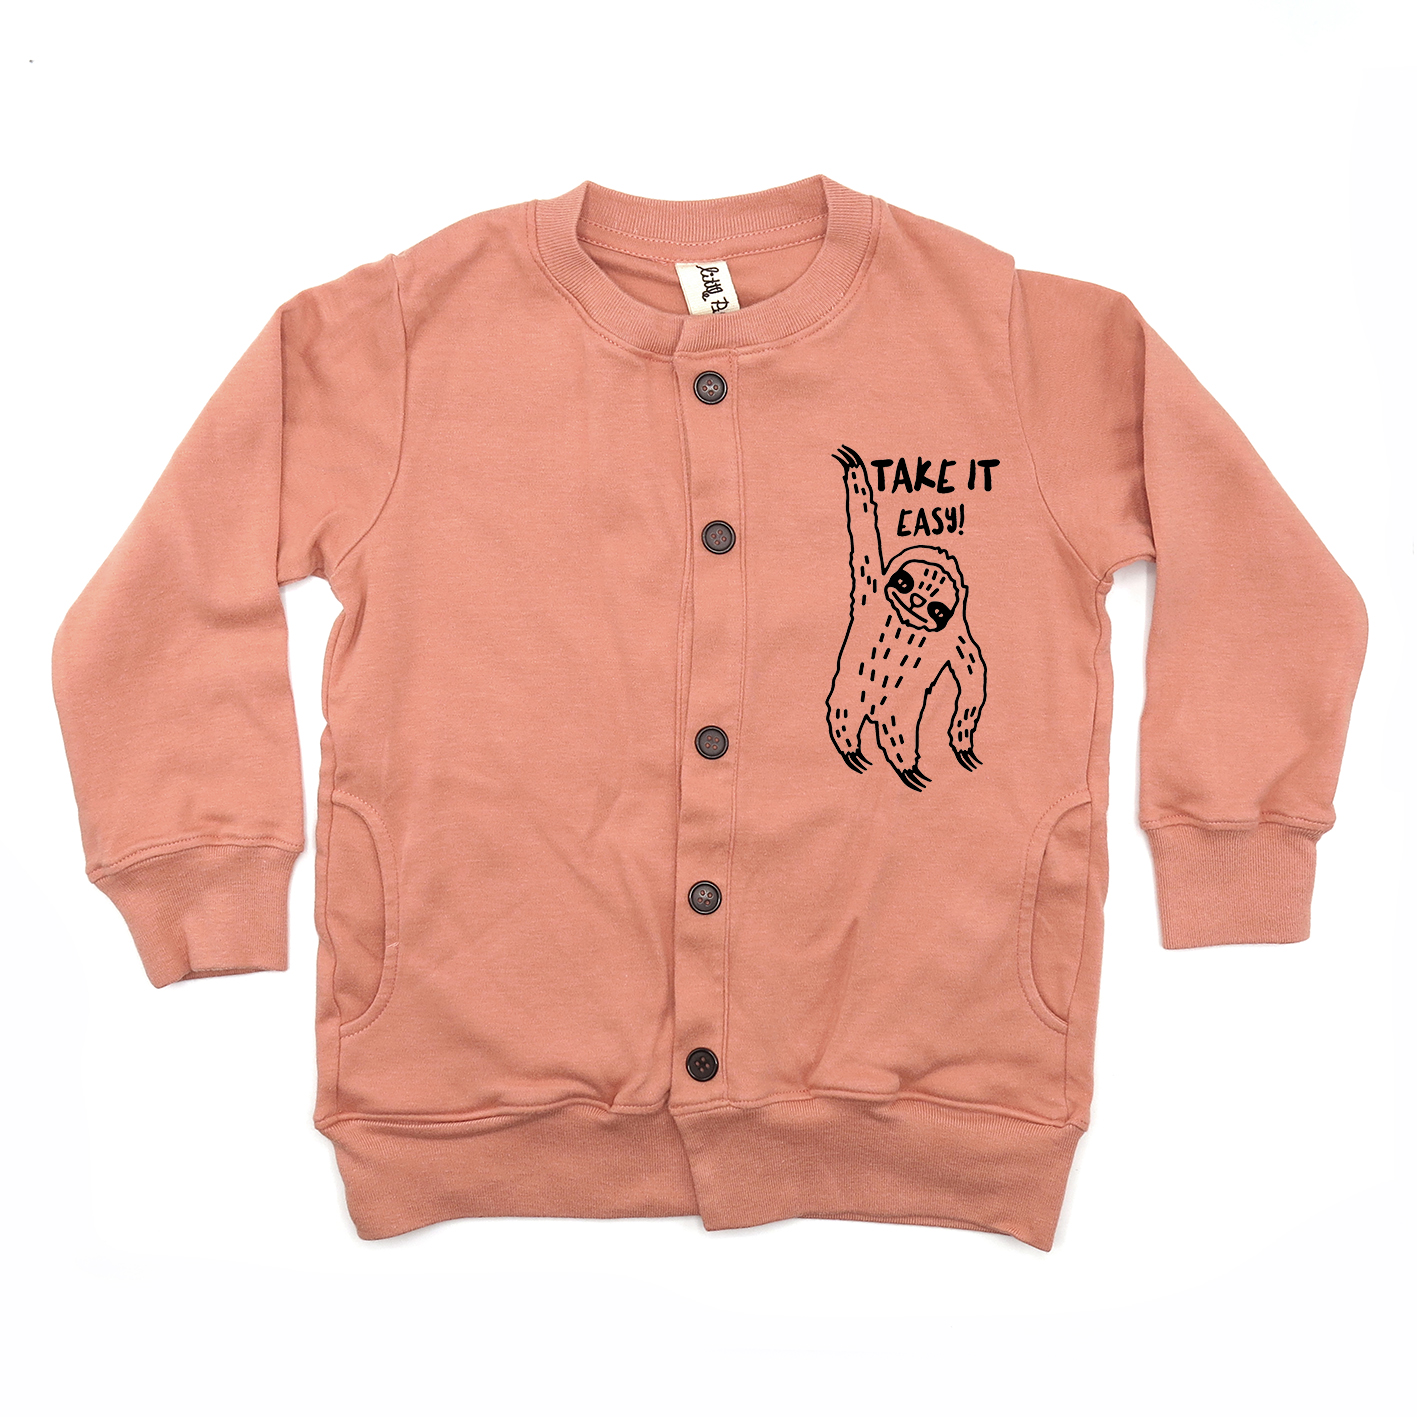 BABY/ KIDS /WOMEN /MEN LP0410 TAKE IT EASY CARDIGAN